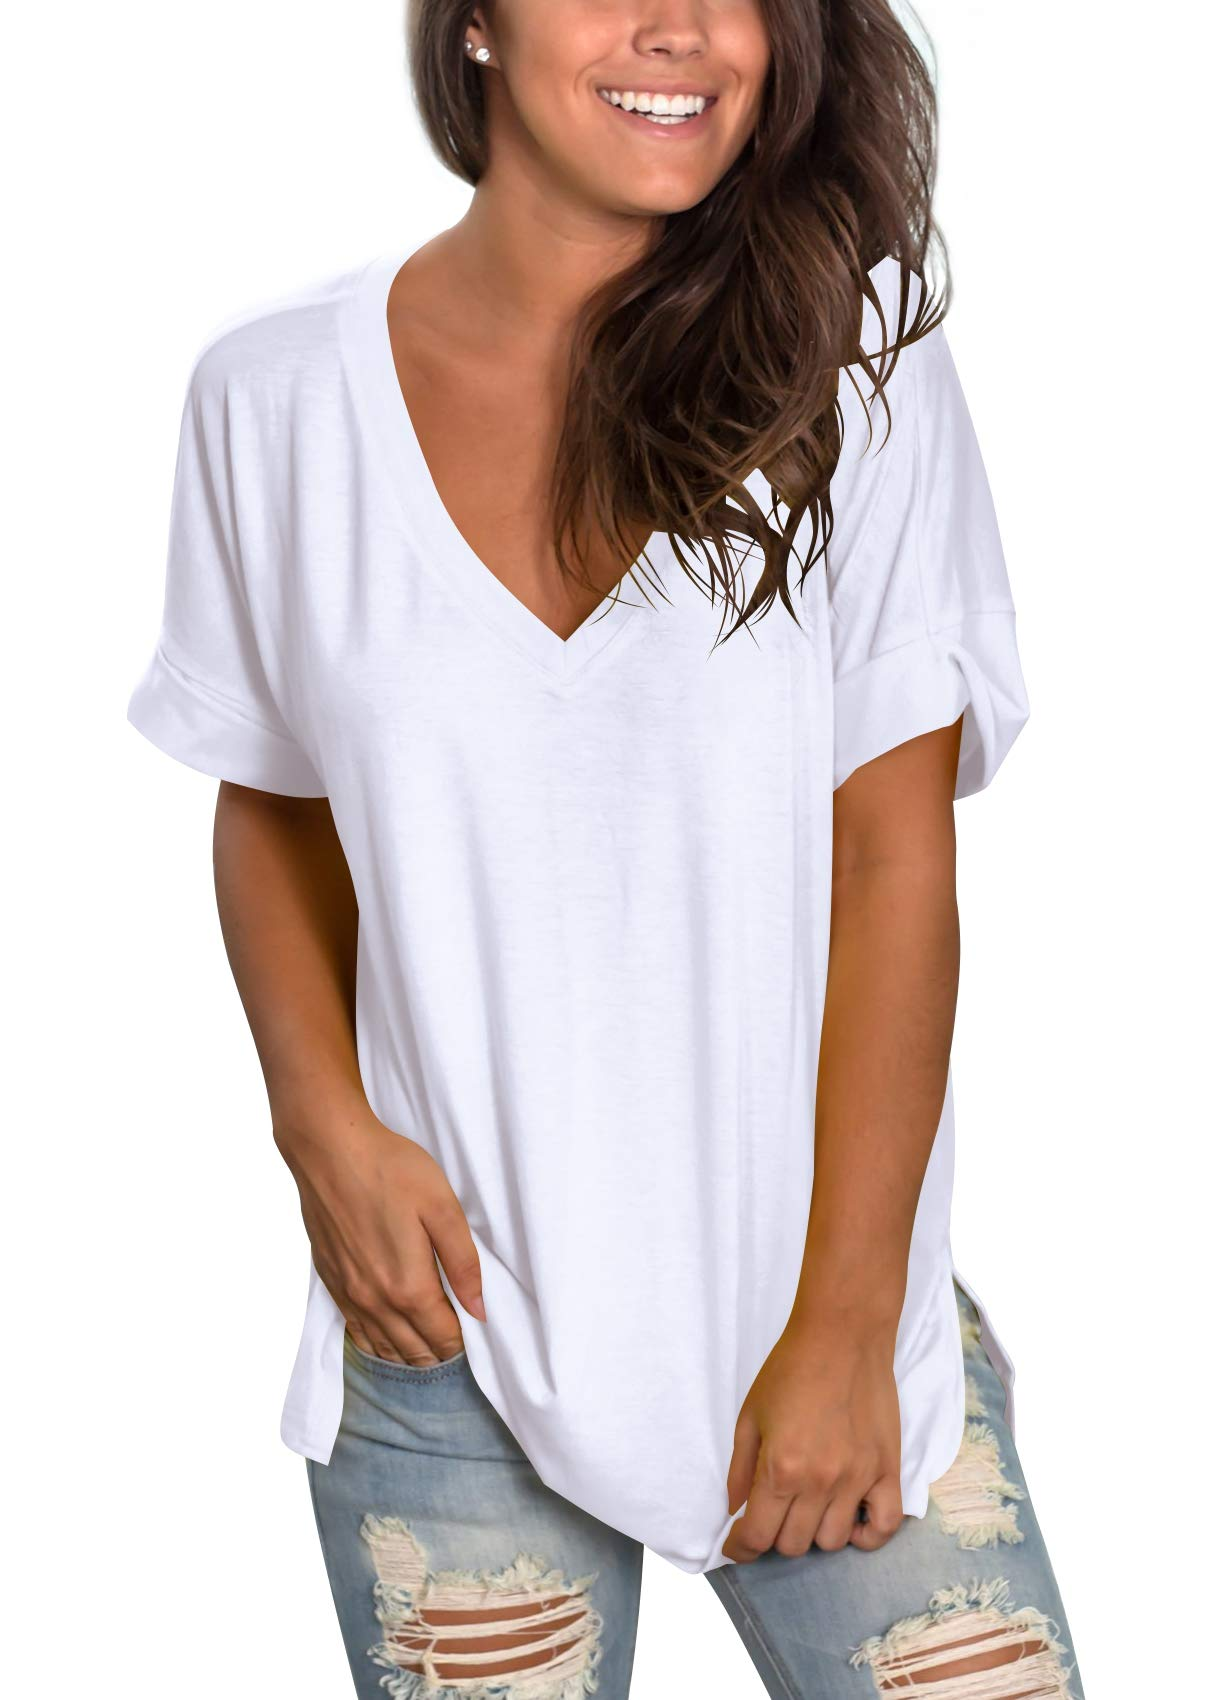 Women's Summer Tops Short Sleeve Loose fit Casual High Low Side Split White L by SAMPEEL